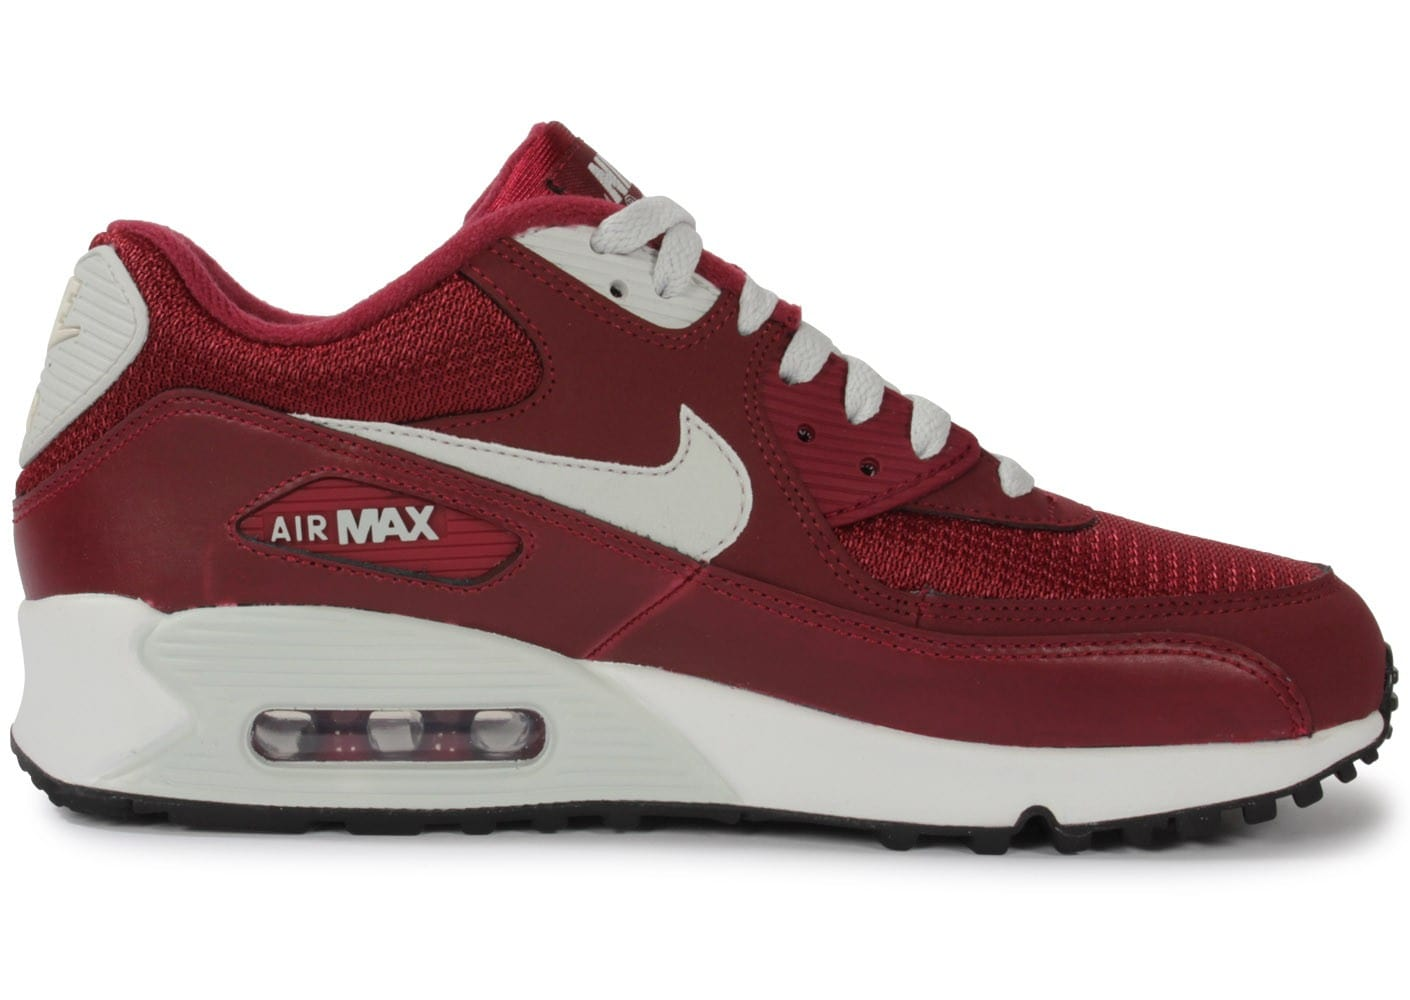 Acquista 2 OFF QUALSIASI nike air max 90 blu CASE E OTTIENI